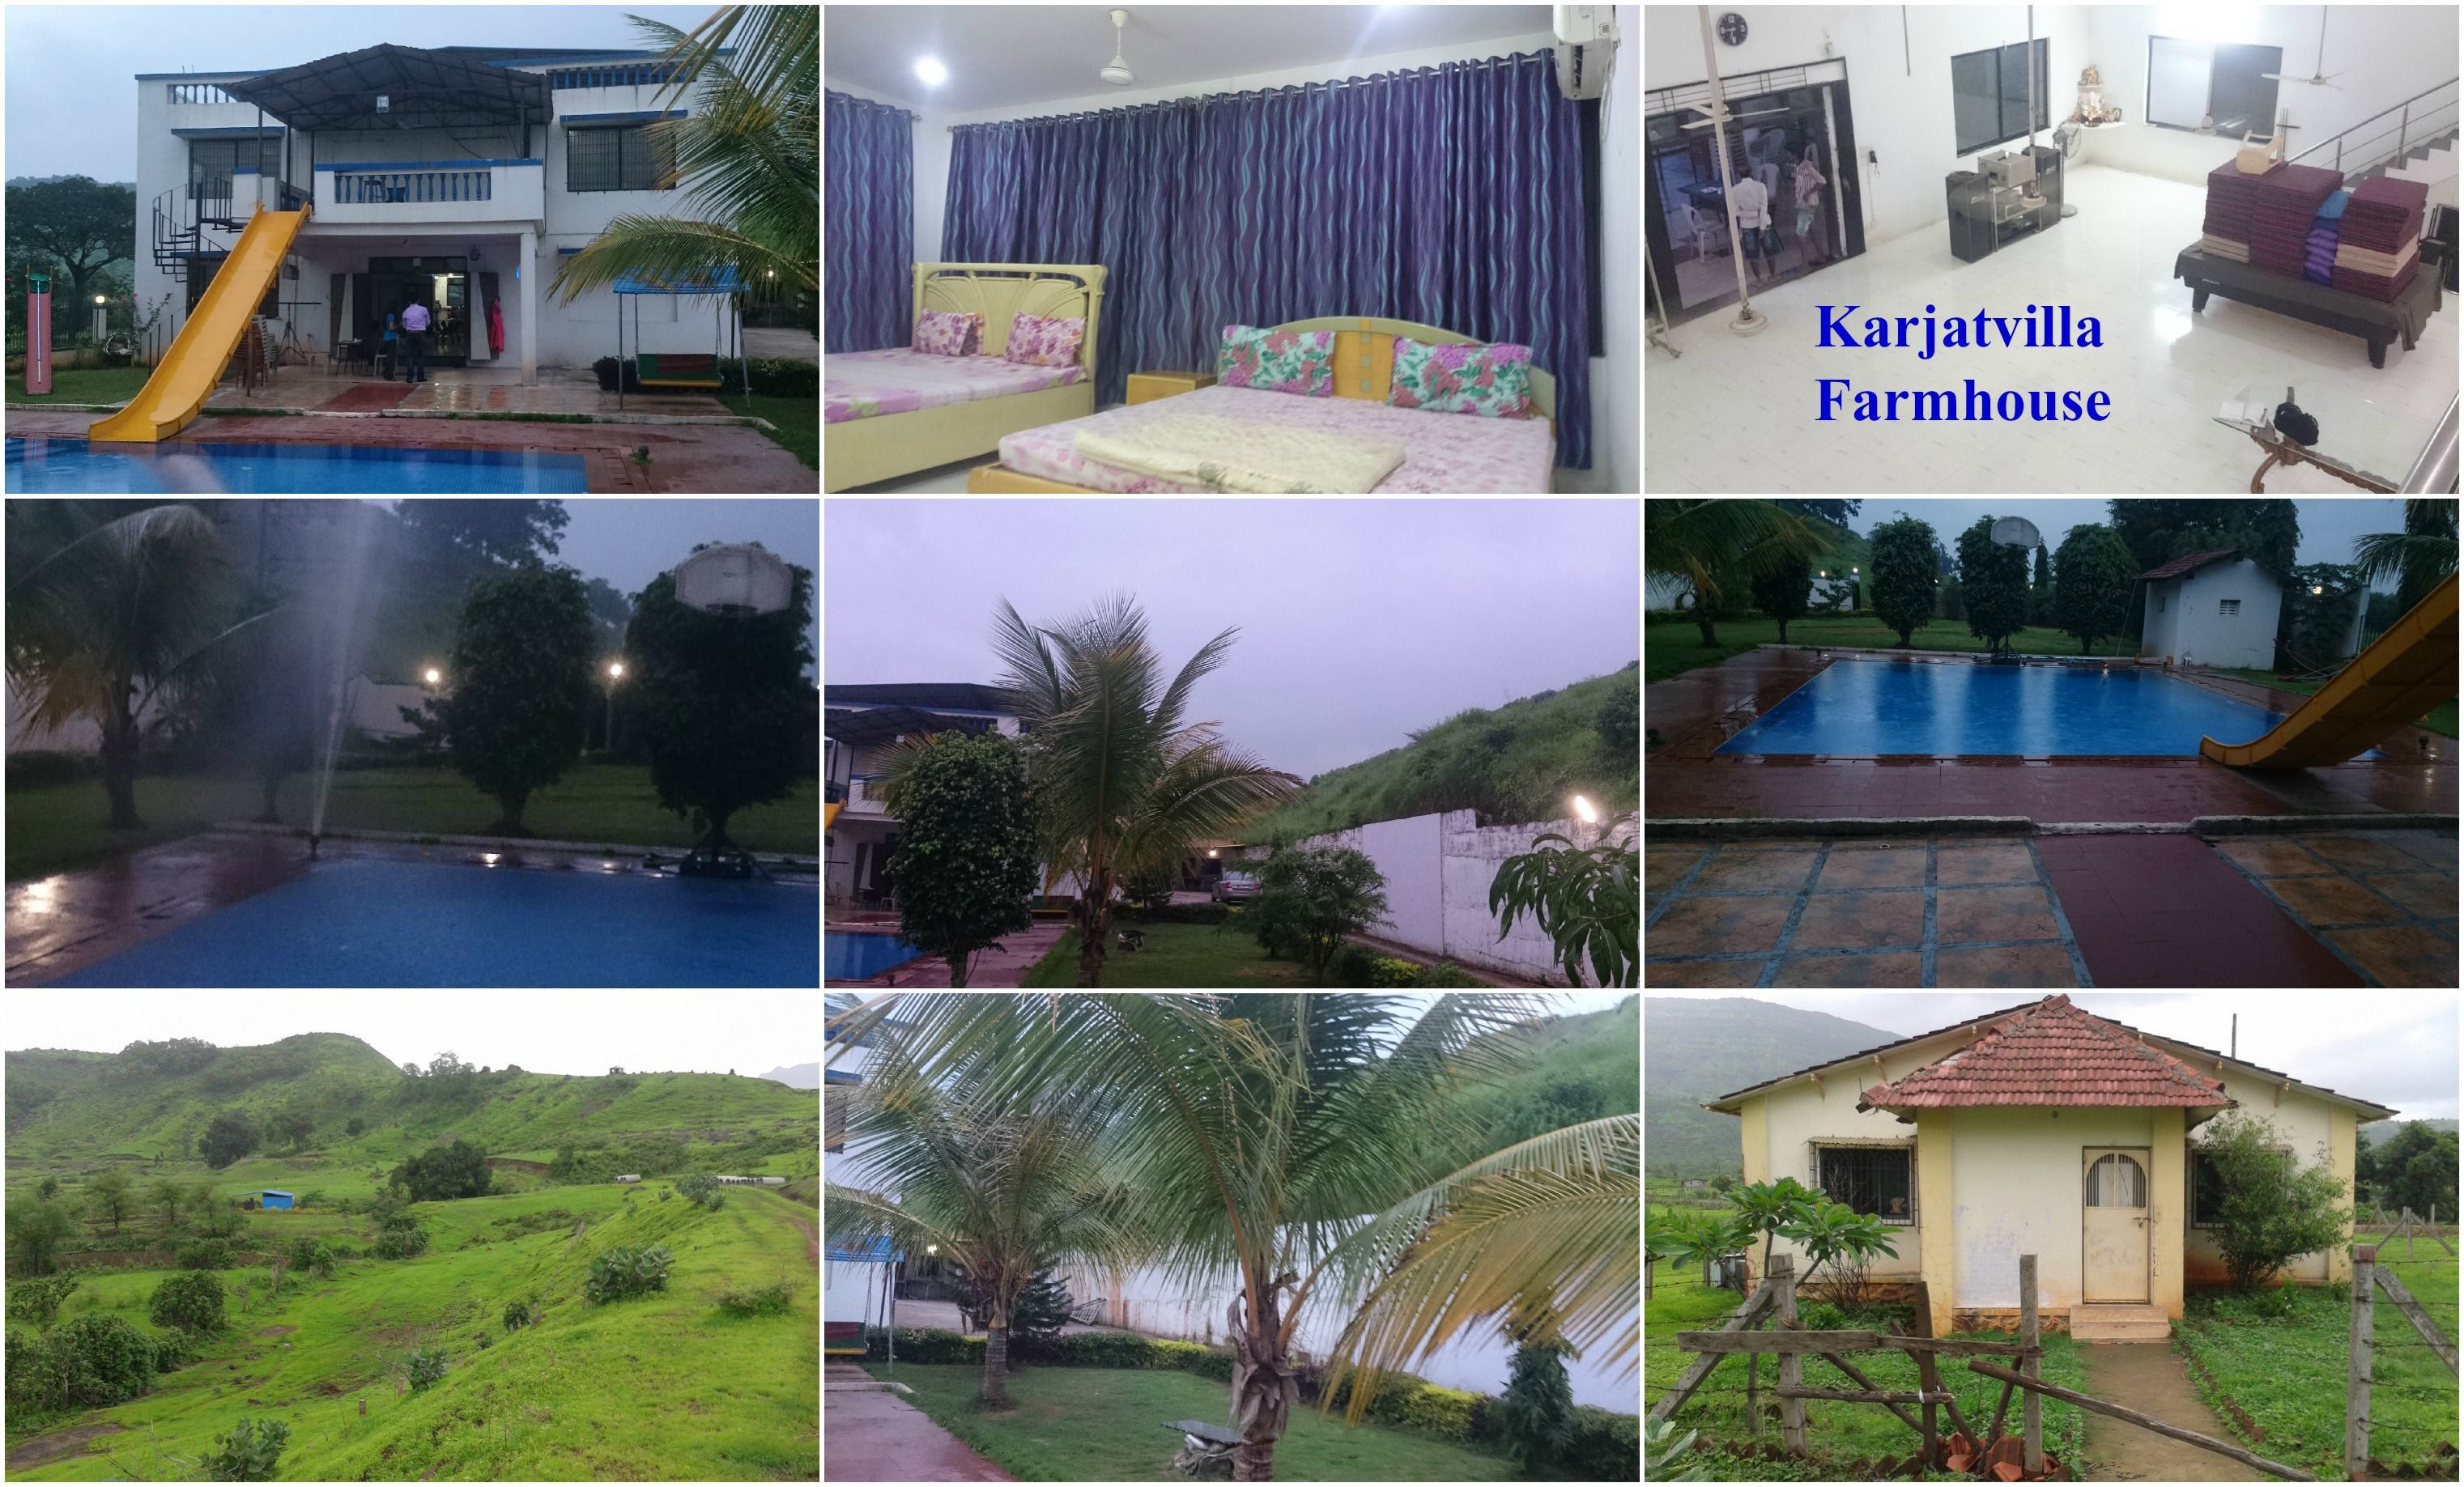 Look out the beauty of Karjatvilla Farmhouse at Karjat